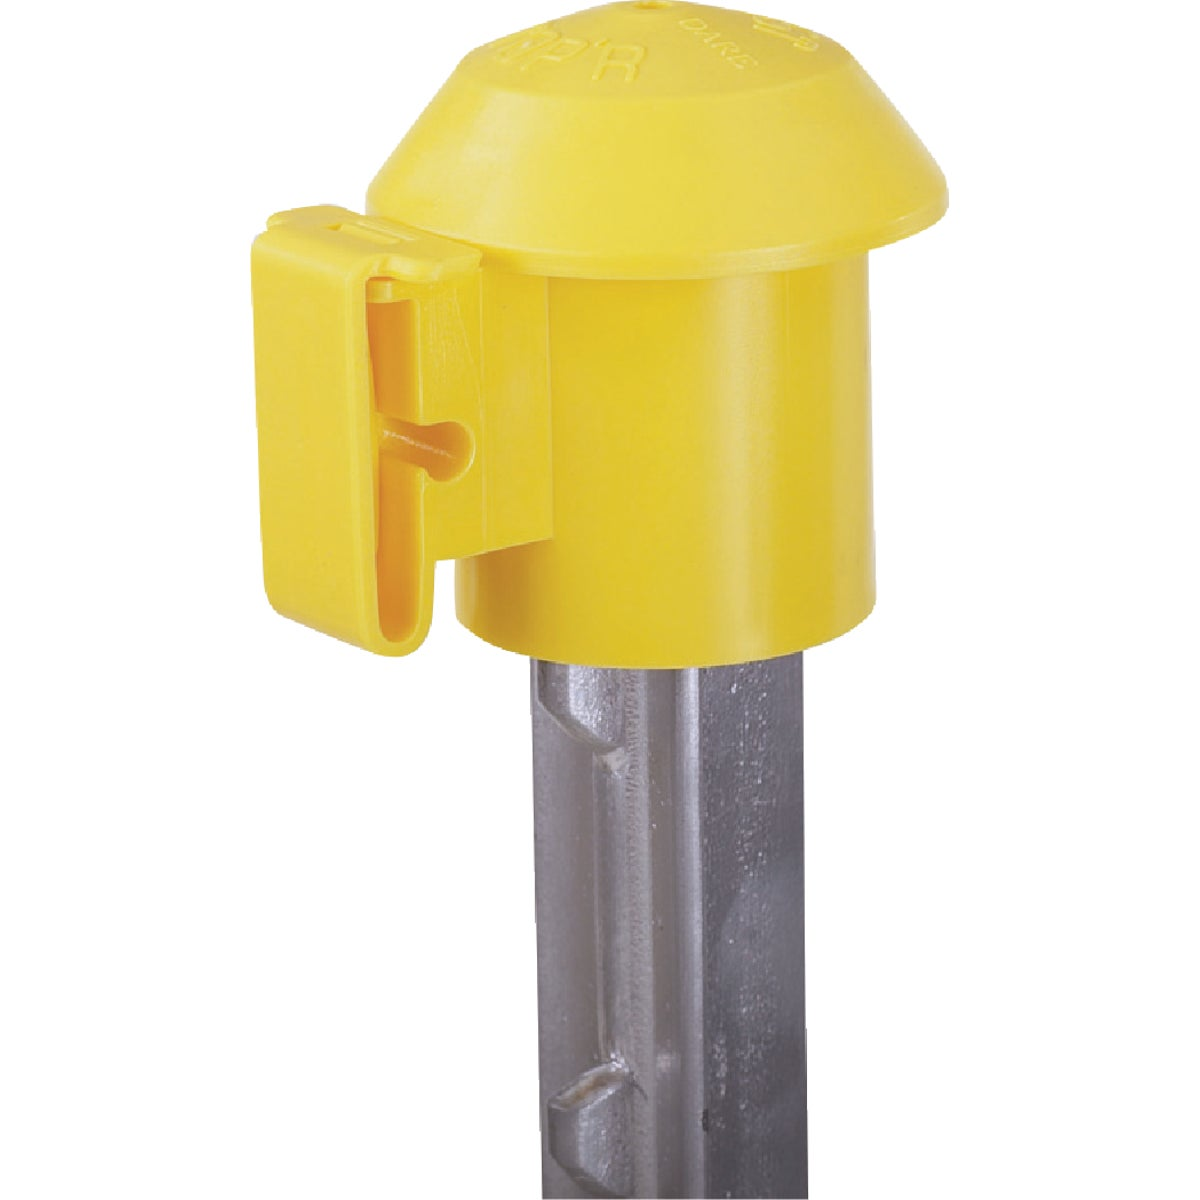 T-POST CAP INSULATOR - 2027 by Dare Products Inc